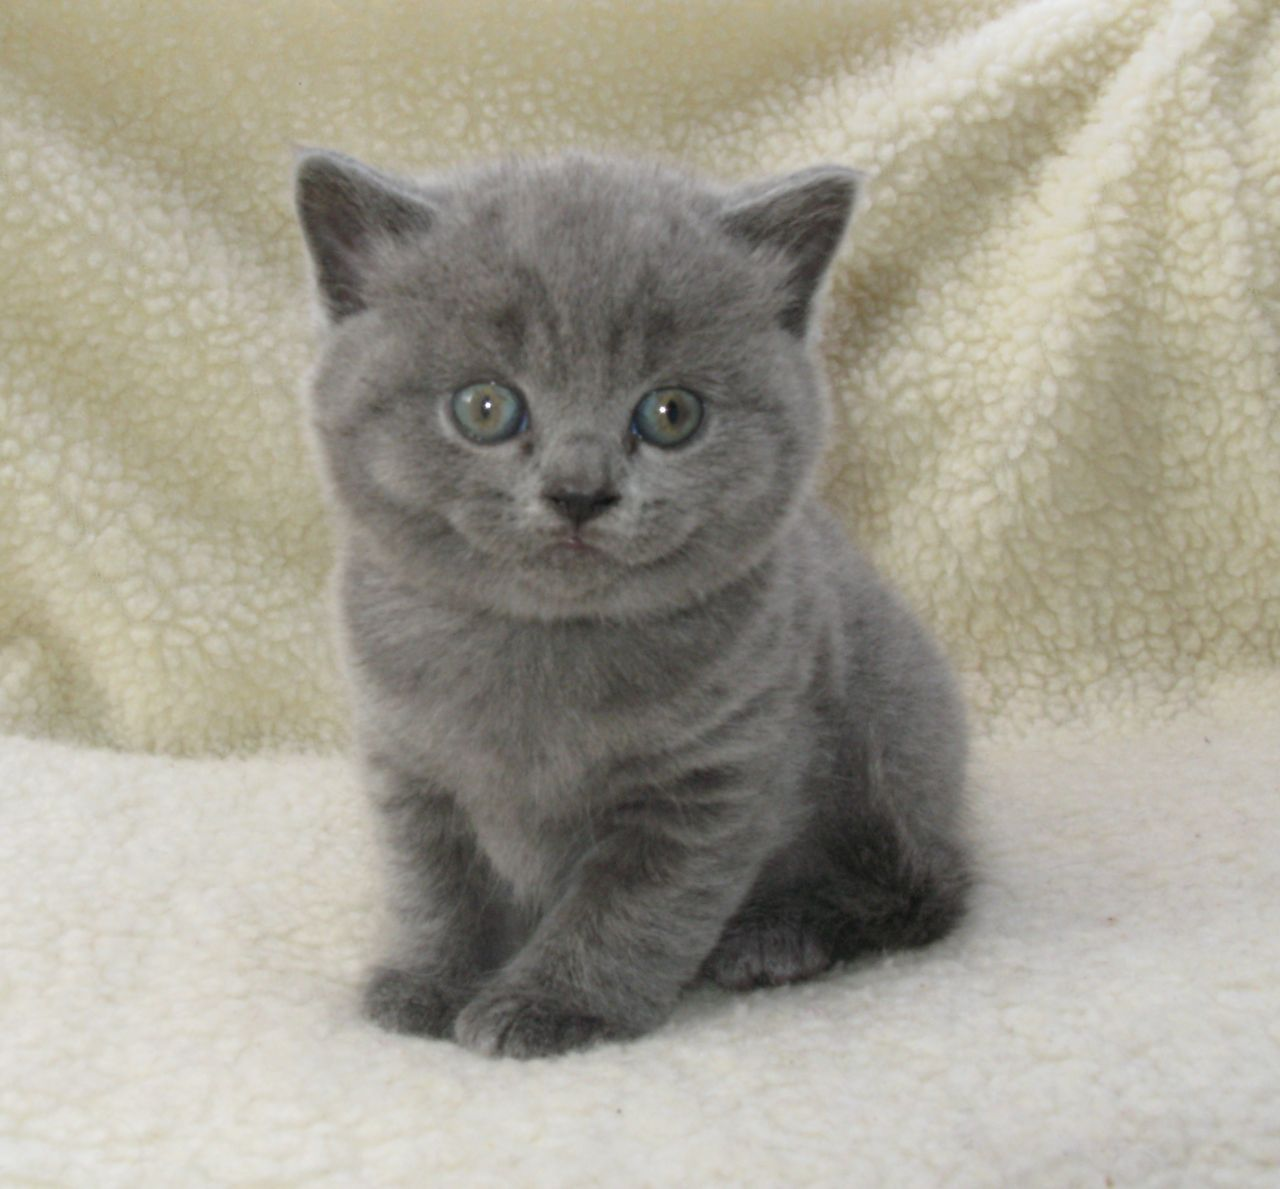 Adorable British Shorthair Kitten Baby cats, Cute cats